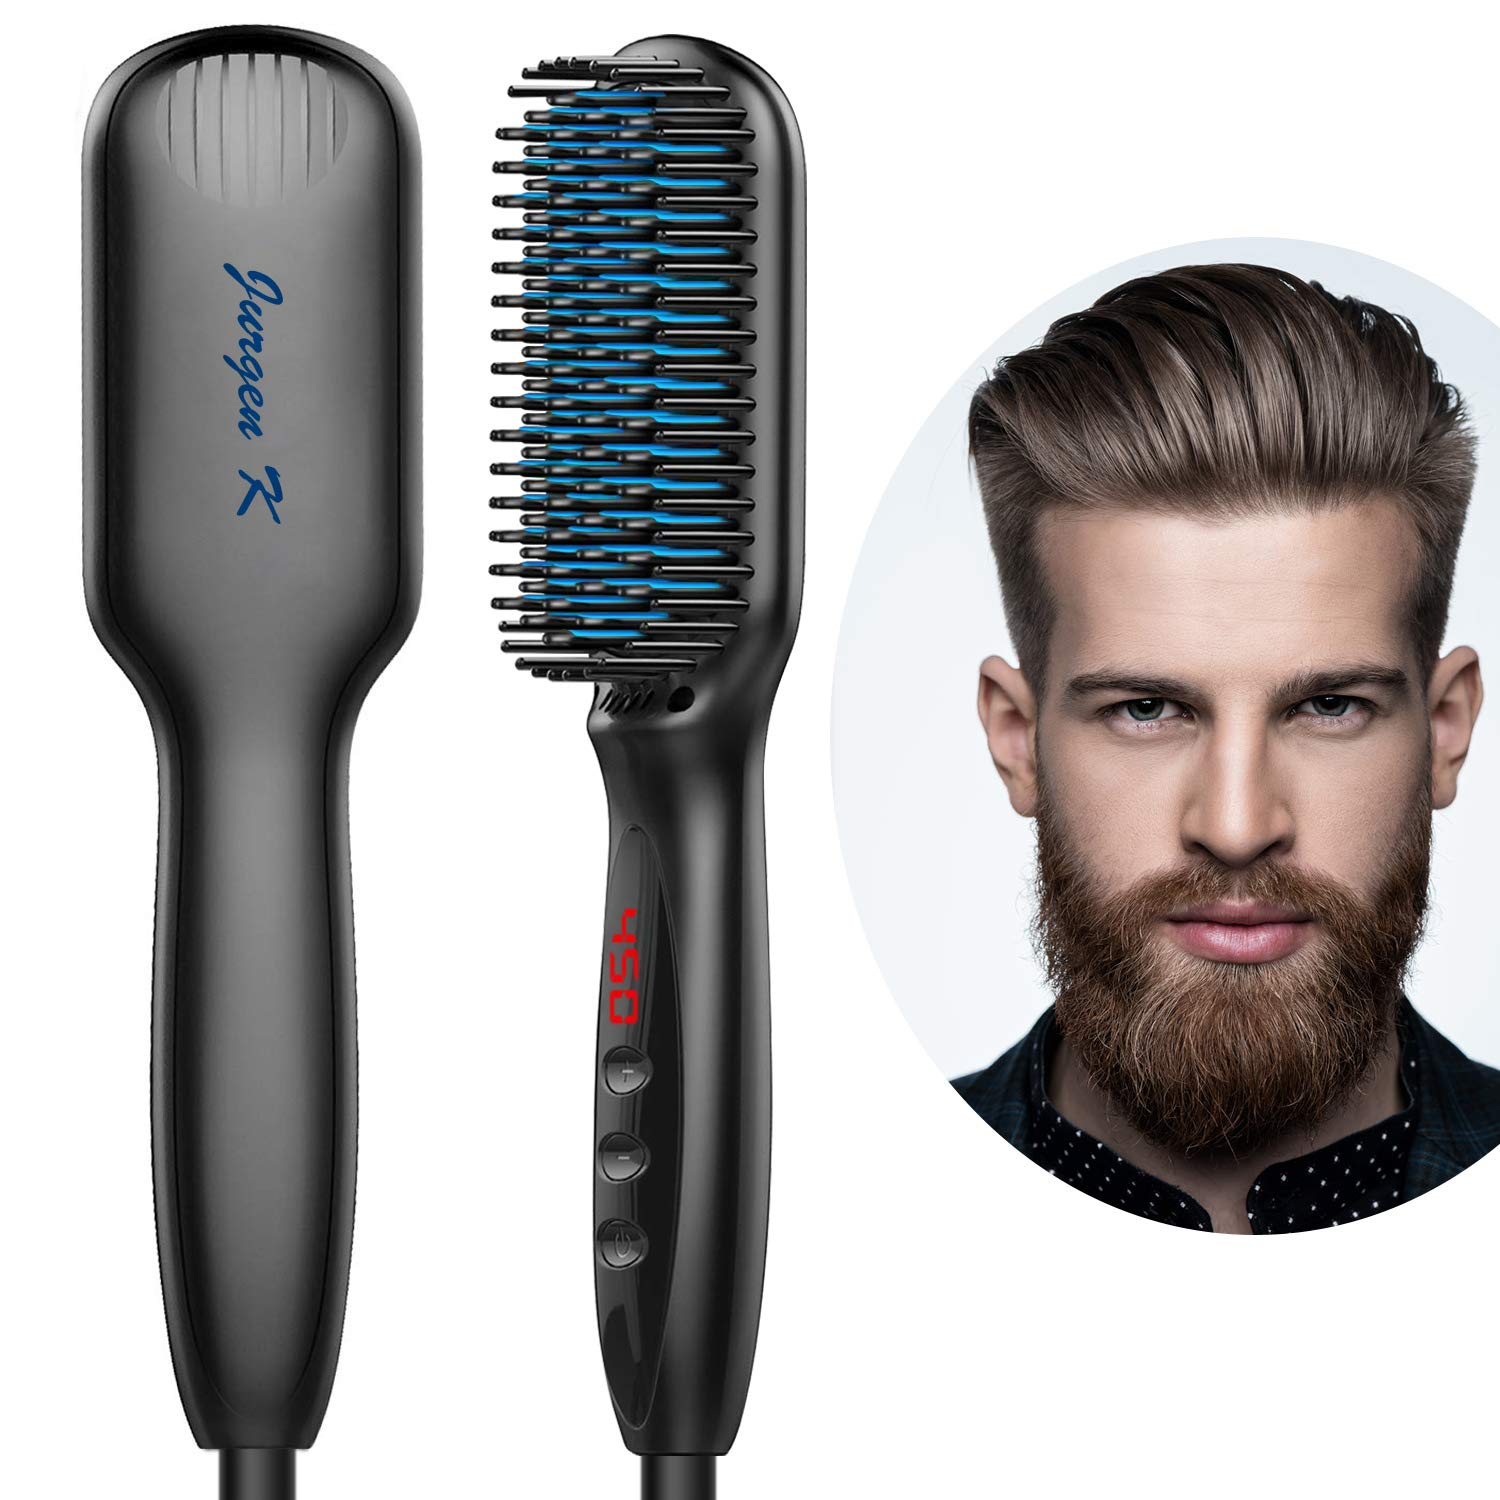 Beard Straightener for Men, Ceramic & Ionic Beard Straightening Comb with Fast Heating and Anti-Scald, Heated Hair Straightener for Women, Dual Voltage Beard Straightener Brush for Home and Travel by Jurgen K